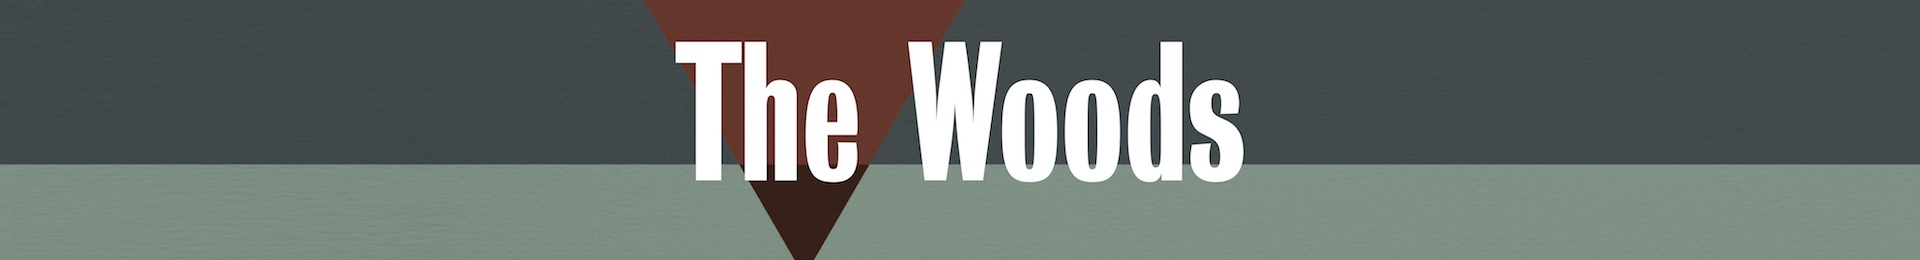 The Woods banner image